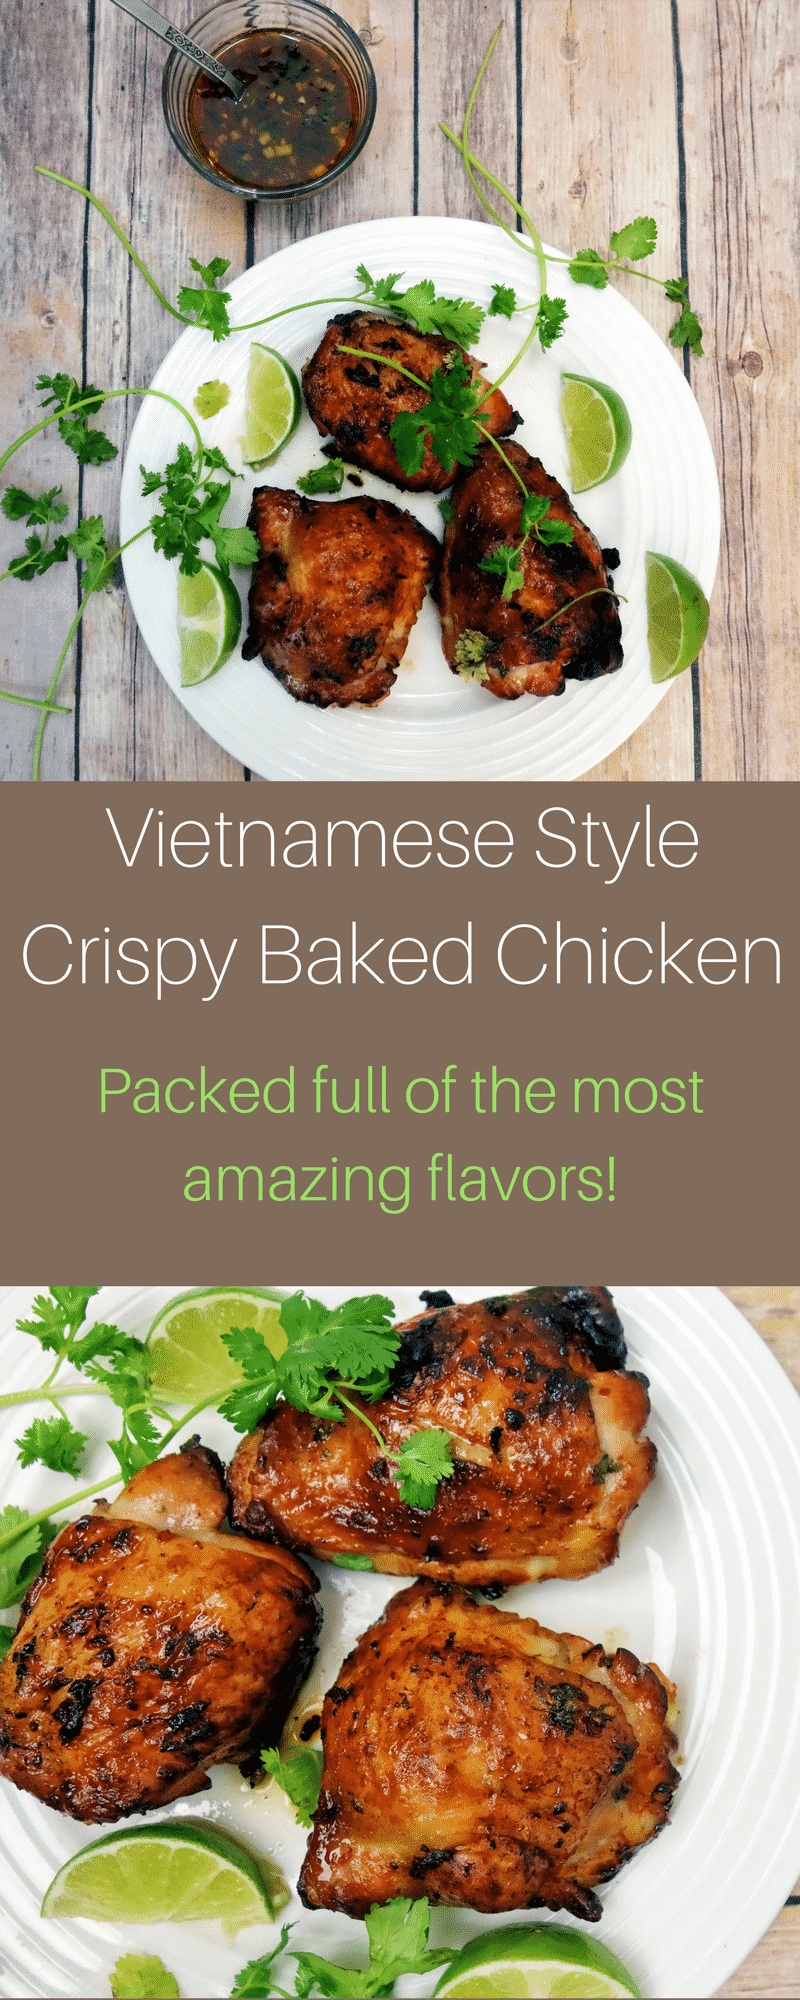 This Vietnamese style baked chicken with crispy skin is packed full of flavor and super simple to make!vietnamese chicken | fish sauce chicken | crispy baked chicken | easy Vietnamese recipe | chicken recipes | best chicken recipes | easy Vietnamese chicken | garlic chicken | crispy baked garlic chicken